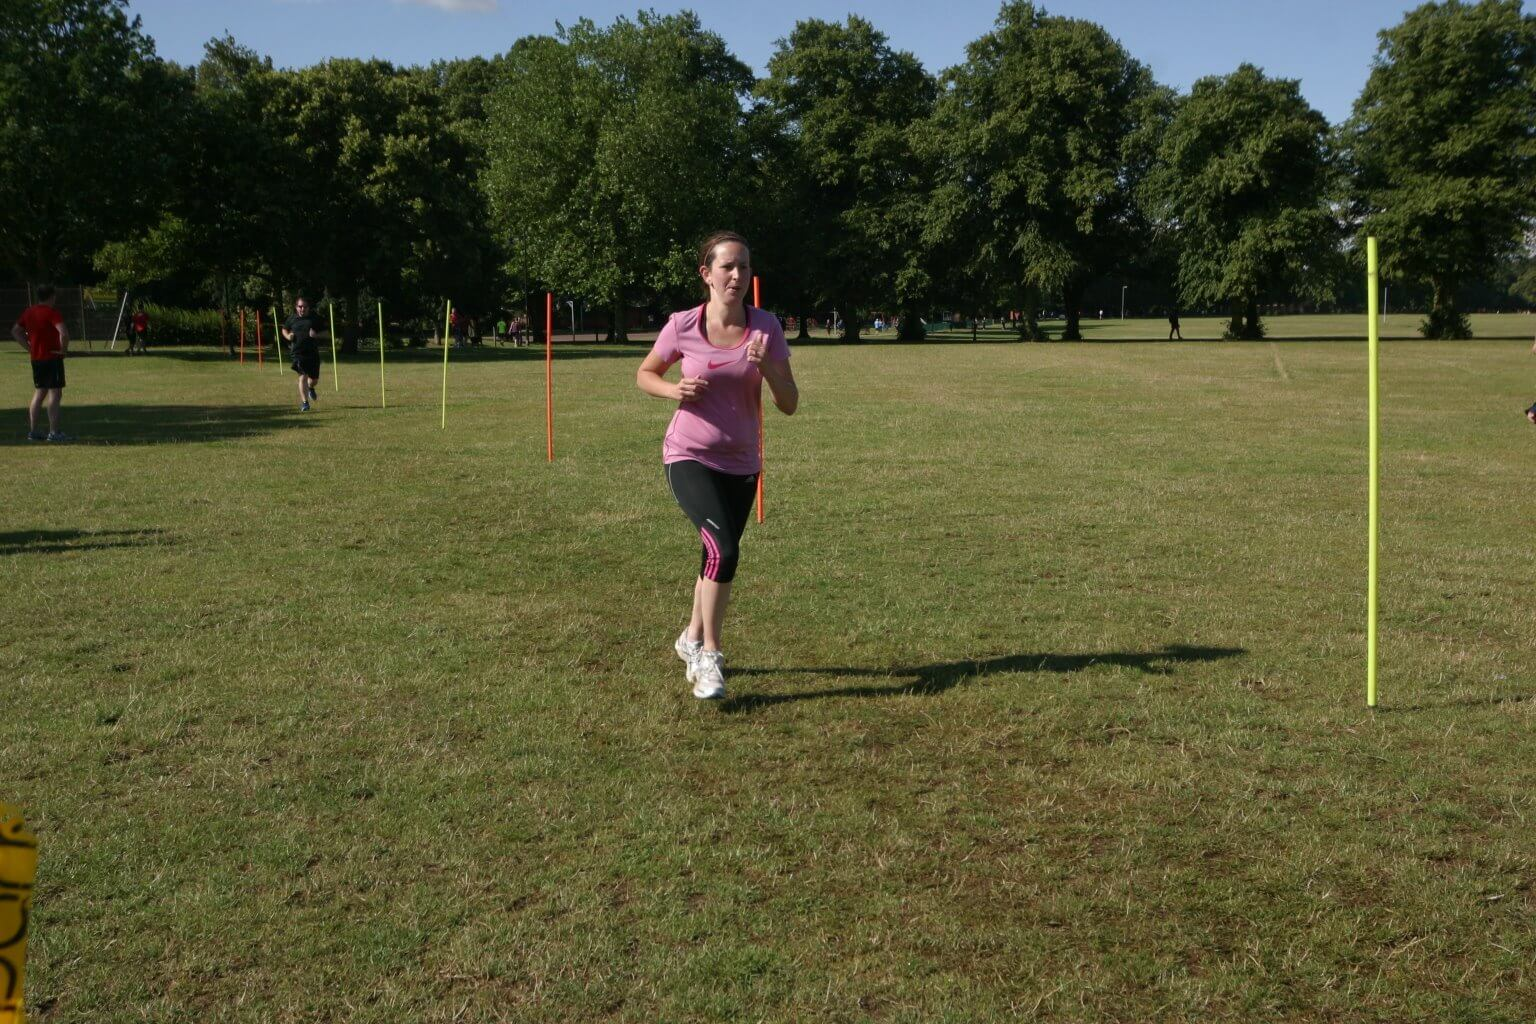 Me, last week, during my local parkrun. Believe me, this was the most flattering pic I could find